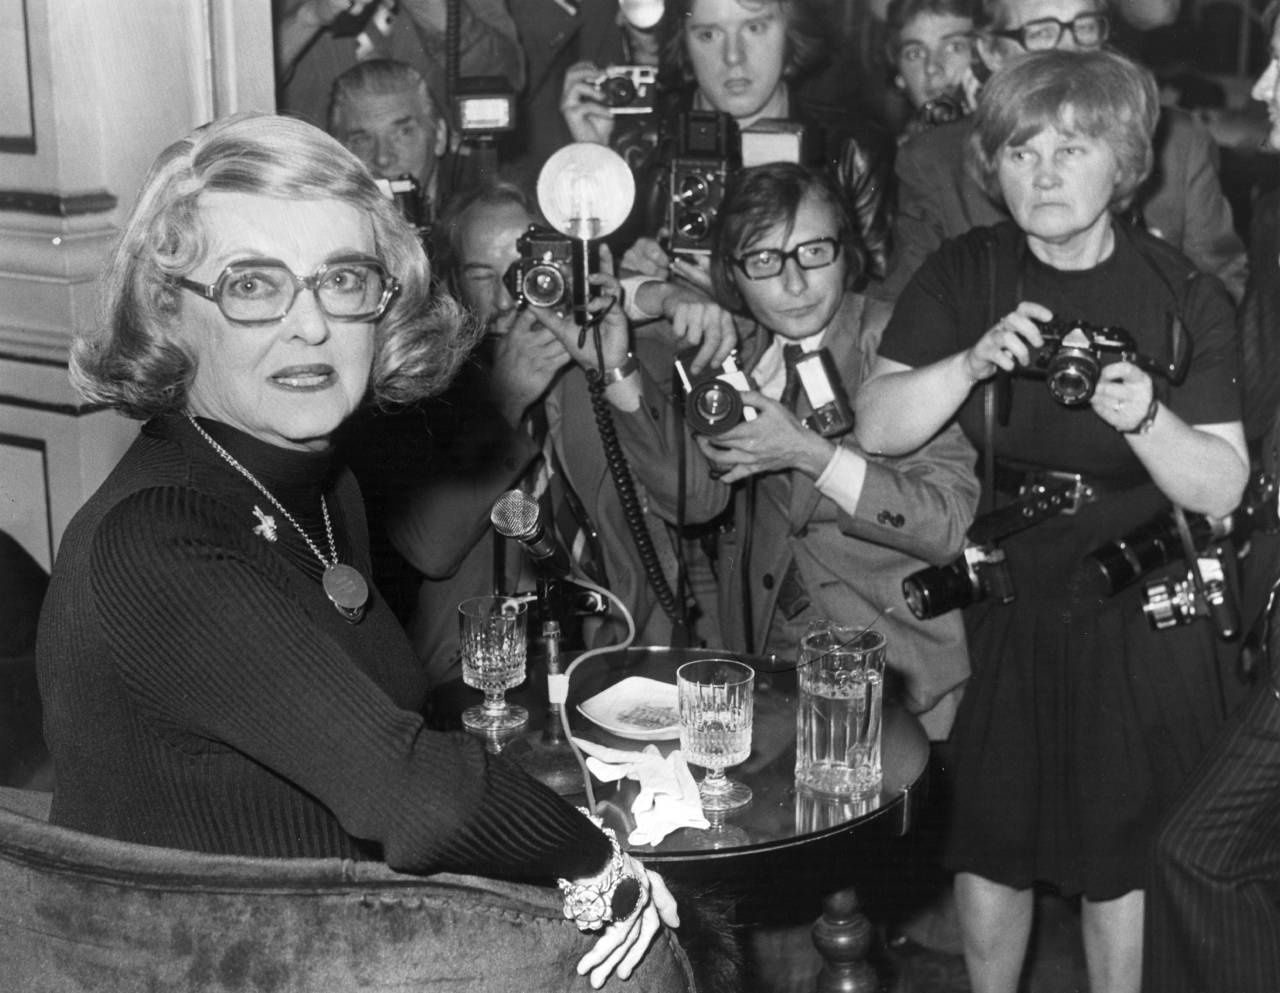 2nd October 1975: Bette Davis (1908-1989), American film actress, at a press conference at the London Palladium, where she will make her stage debut. Amongst the members of the press is photographer Jane Bown. (Photo by Central Press/Getty Images)